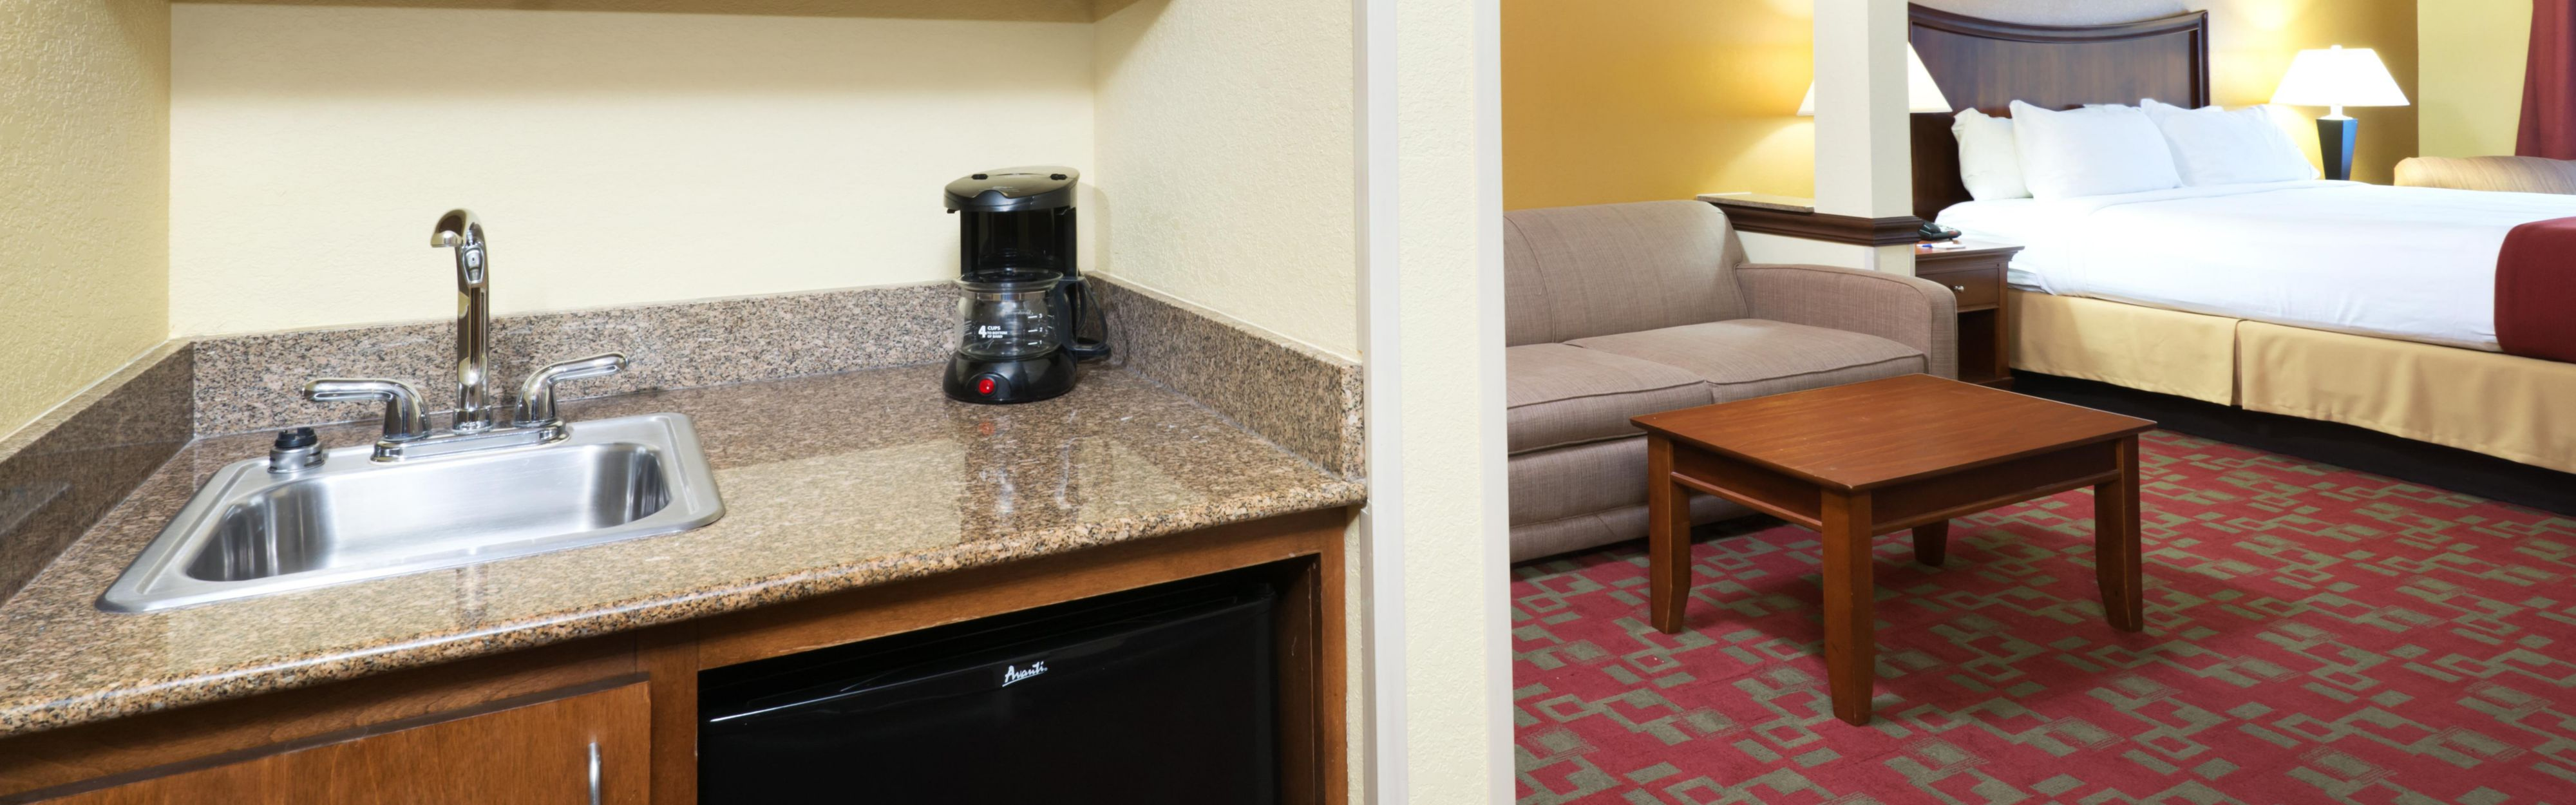 Holiday Inn Express & Suites Little Rock-West image 1